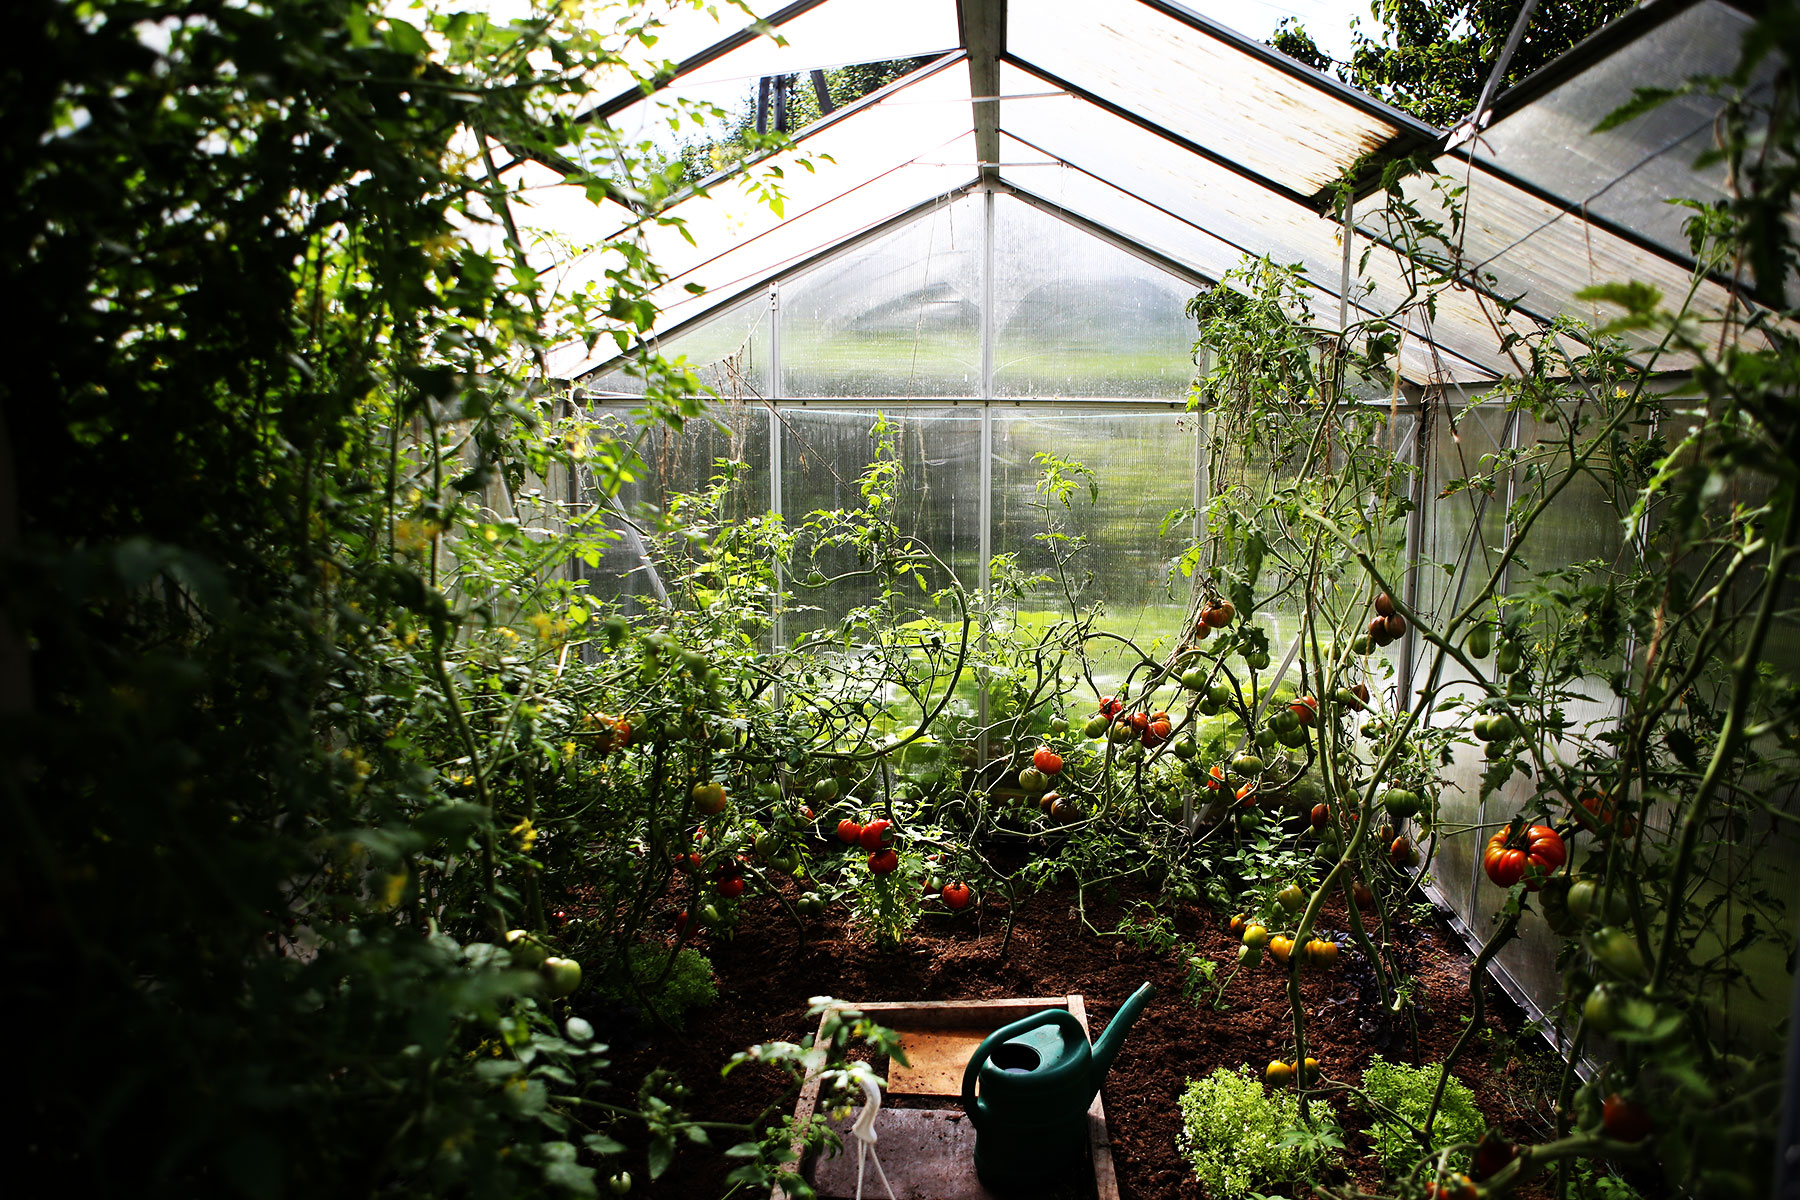 Greenhouse tomatoes